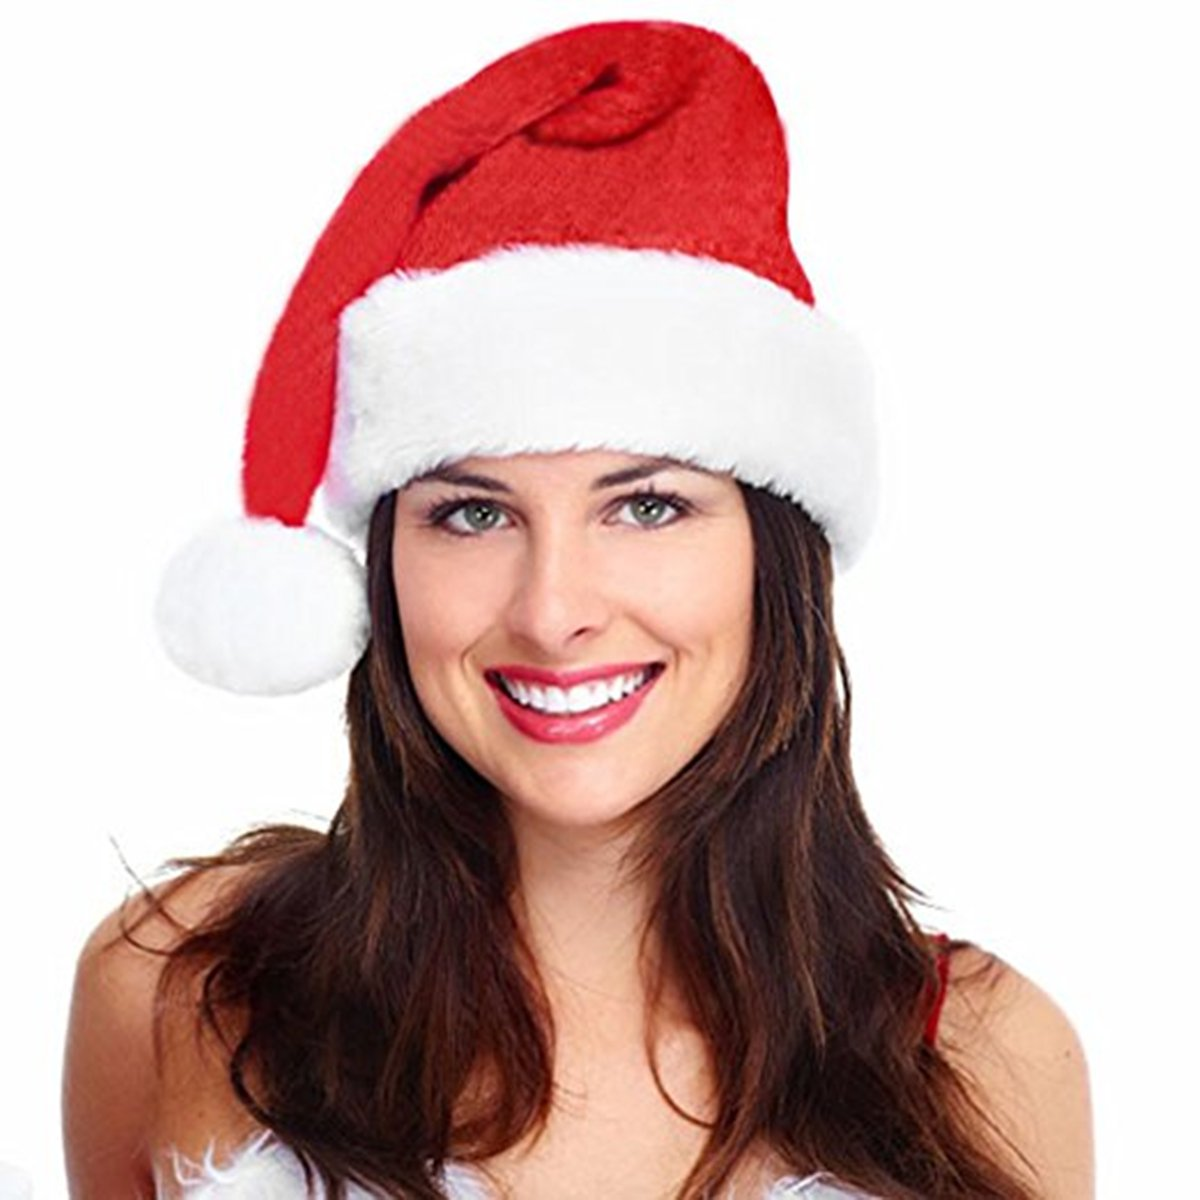 MAIPOETYRY Santa Hat-Christmas Costume Classic Hat for Adult, Red/White